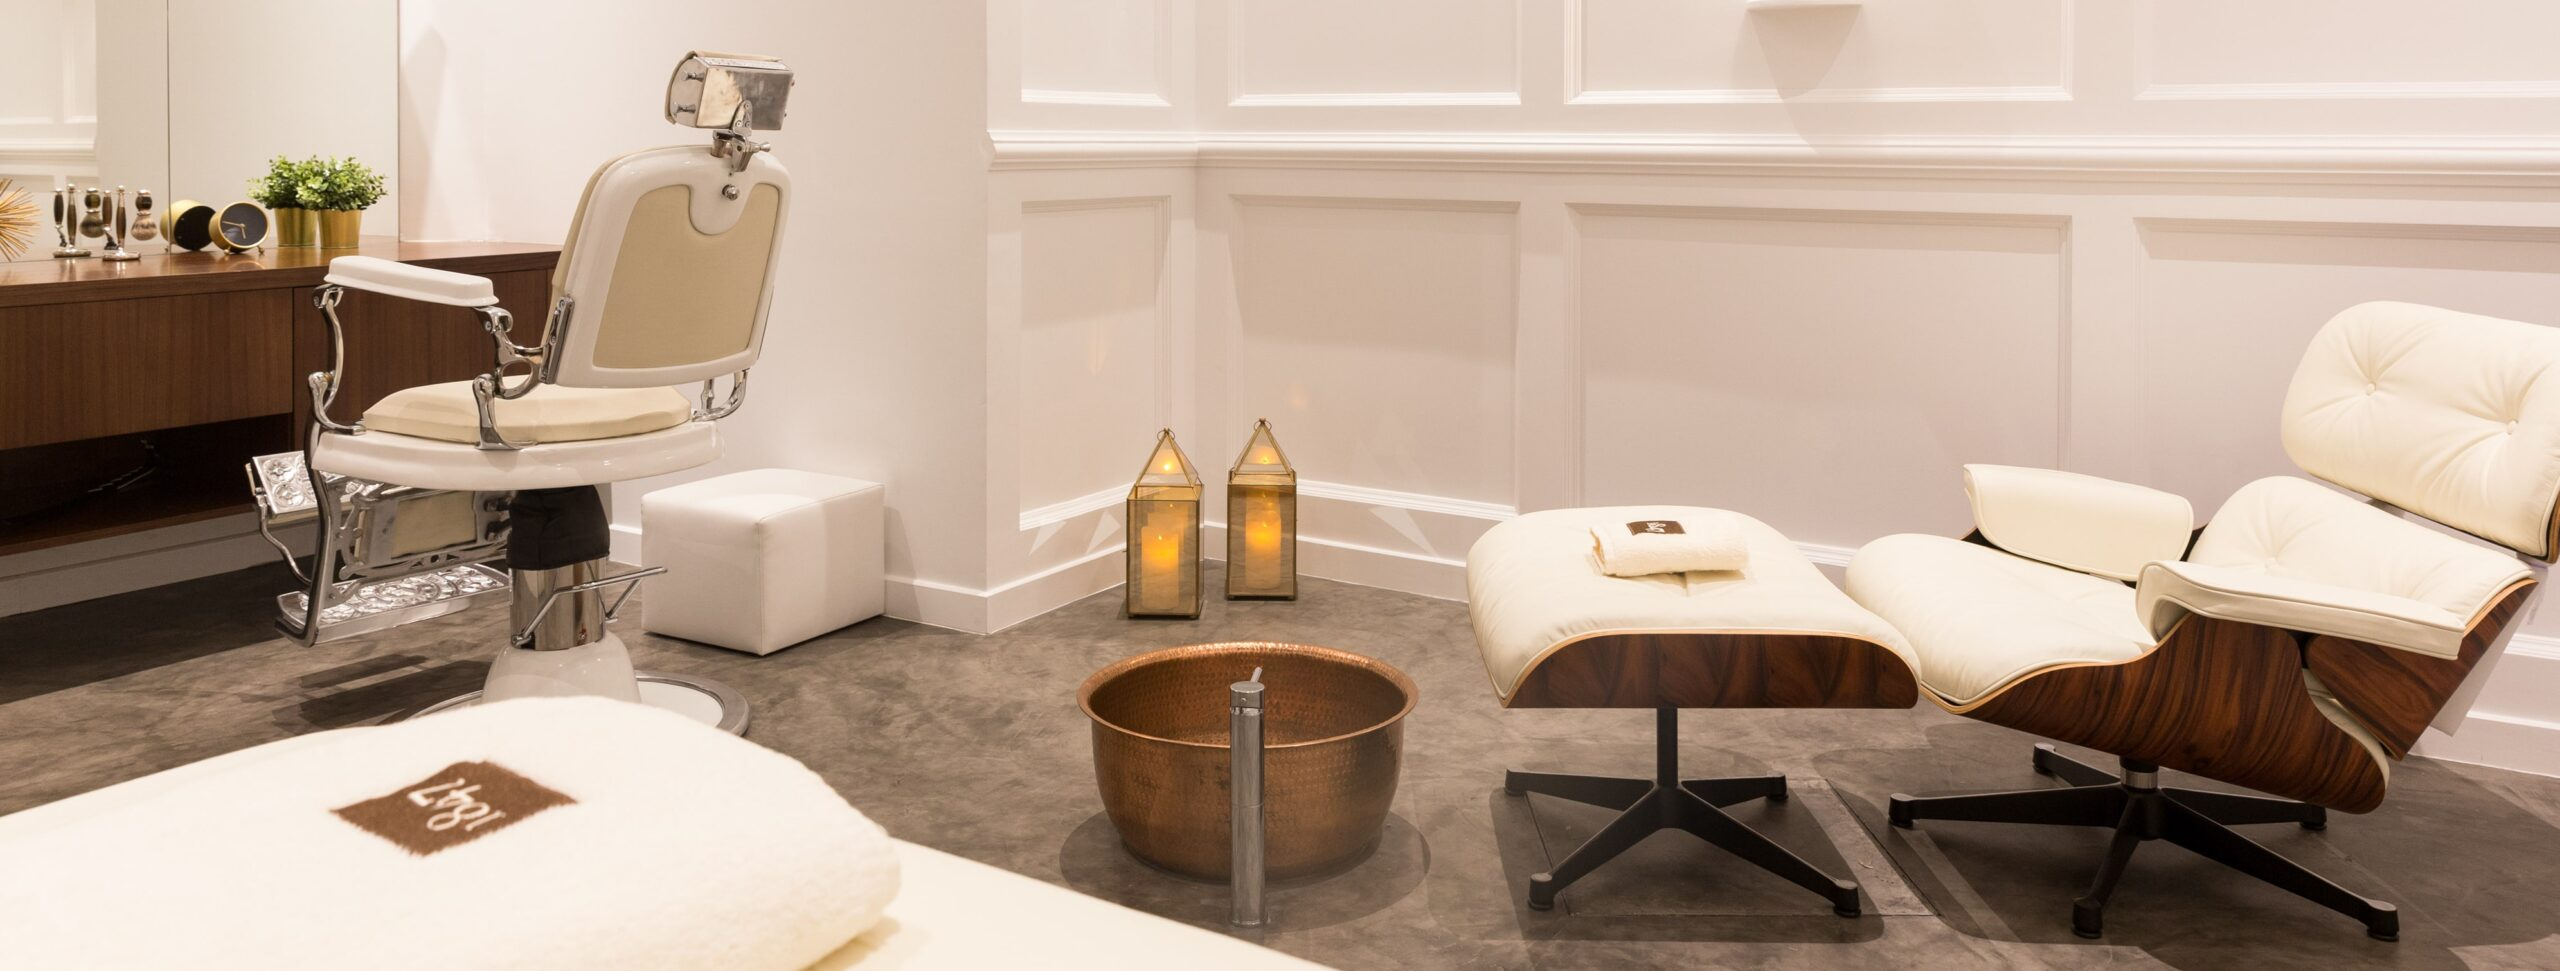 An exclusive opportunity to own an 1847 Male Grooming Lounge